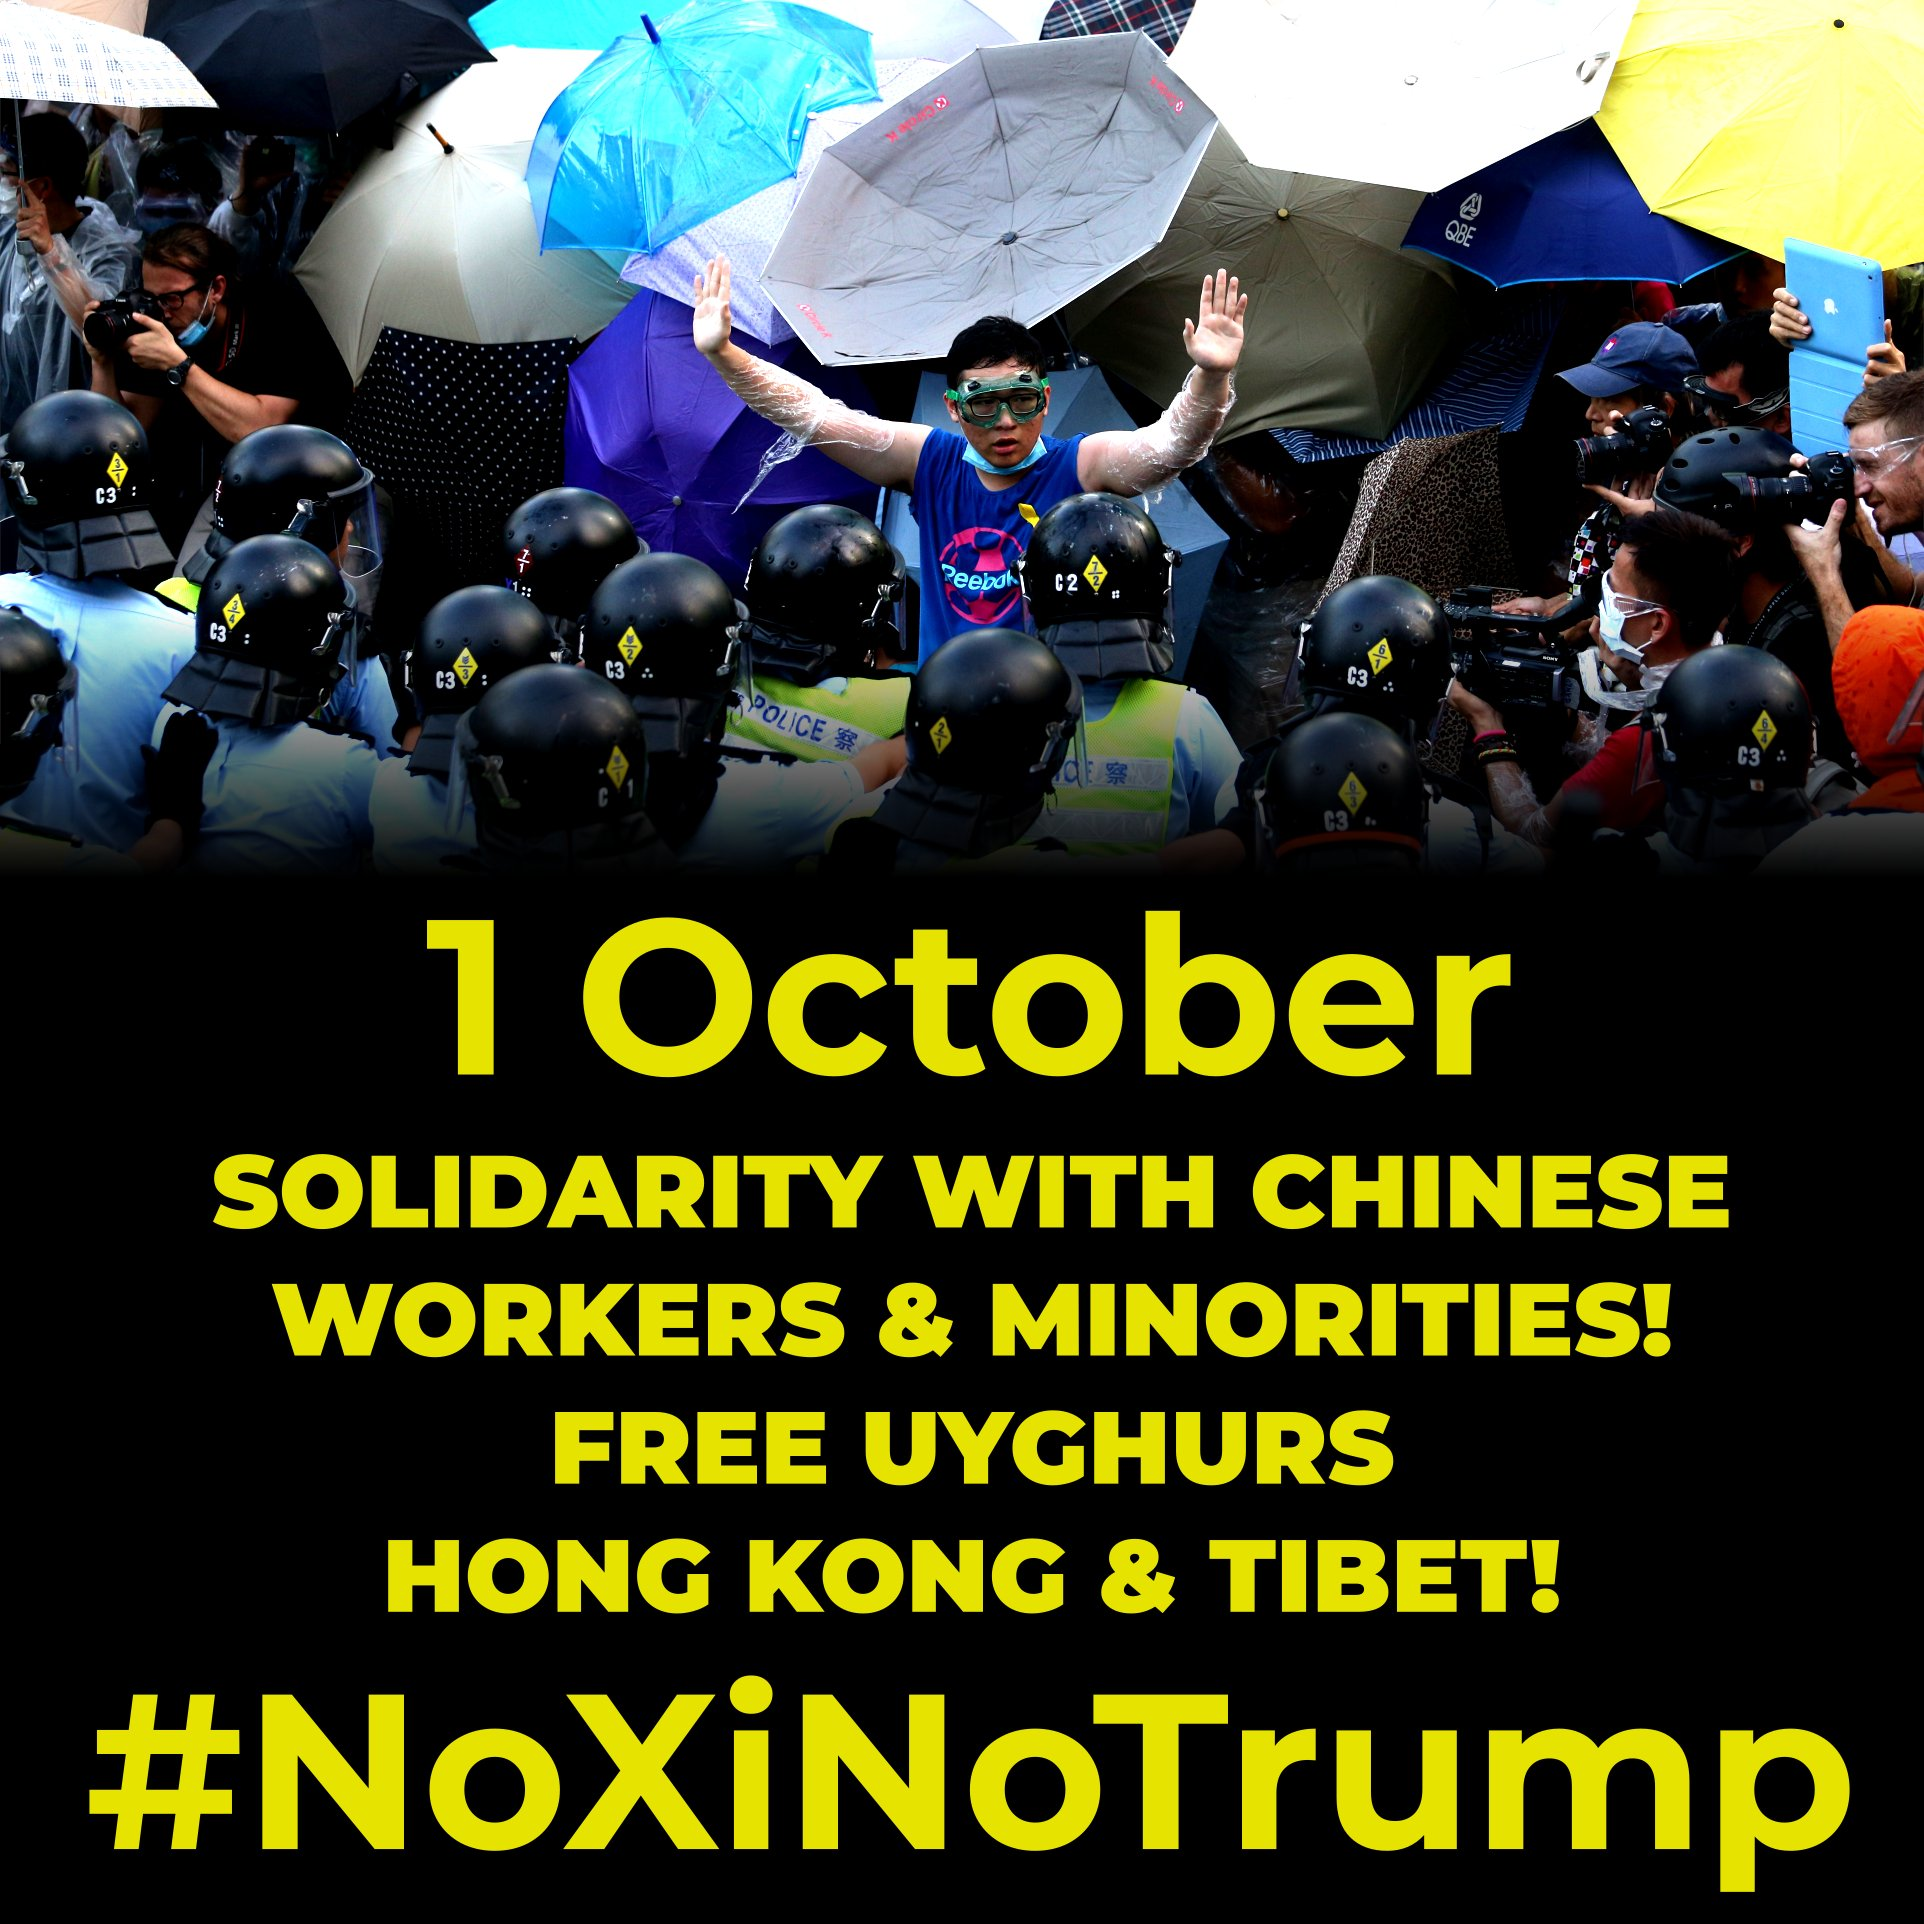 """Sign reading: """"SOLIDARITY WITH CHINESE WORKERS & MINORITIES! FREE UYGHURS HONG KONG & TIBET!"""" [logos for Labour Movement Solidarity with HK and the Uyghur Solidarity Campaign] """"#NoXiNoTrump"""""""